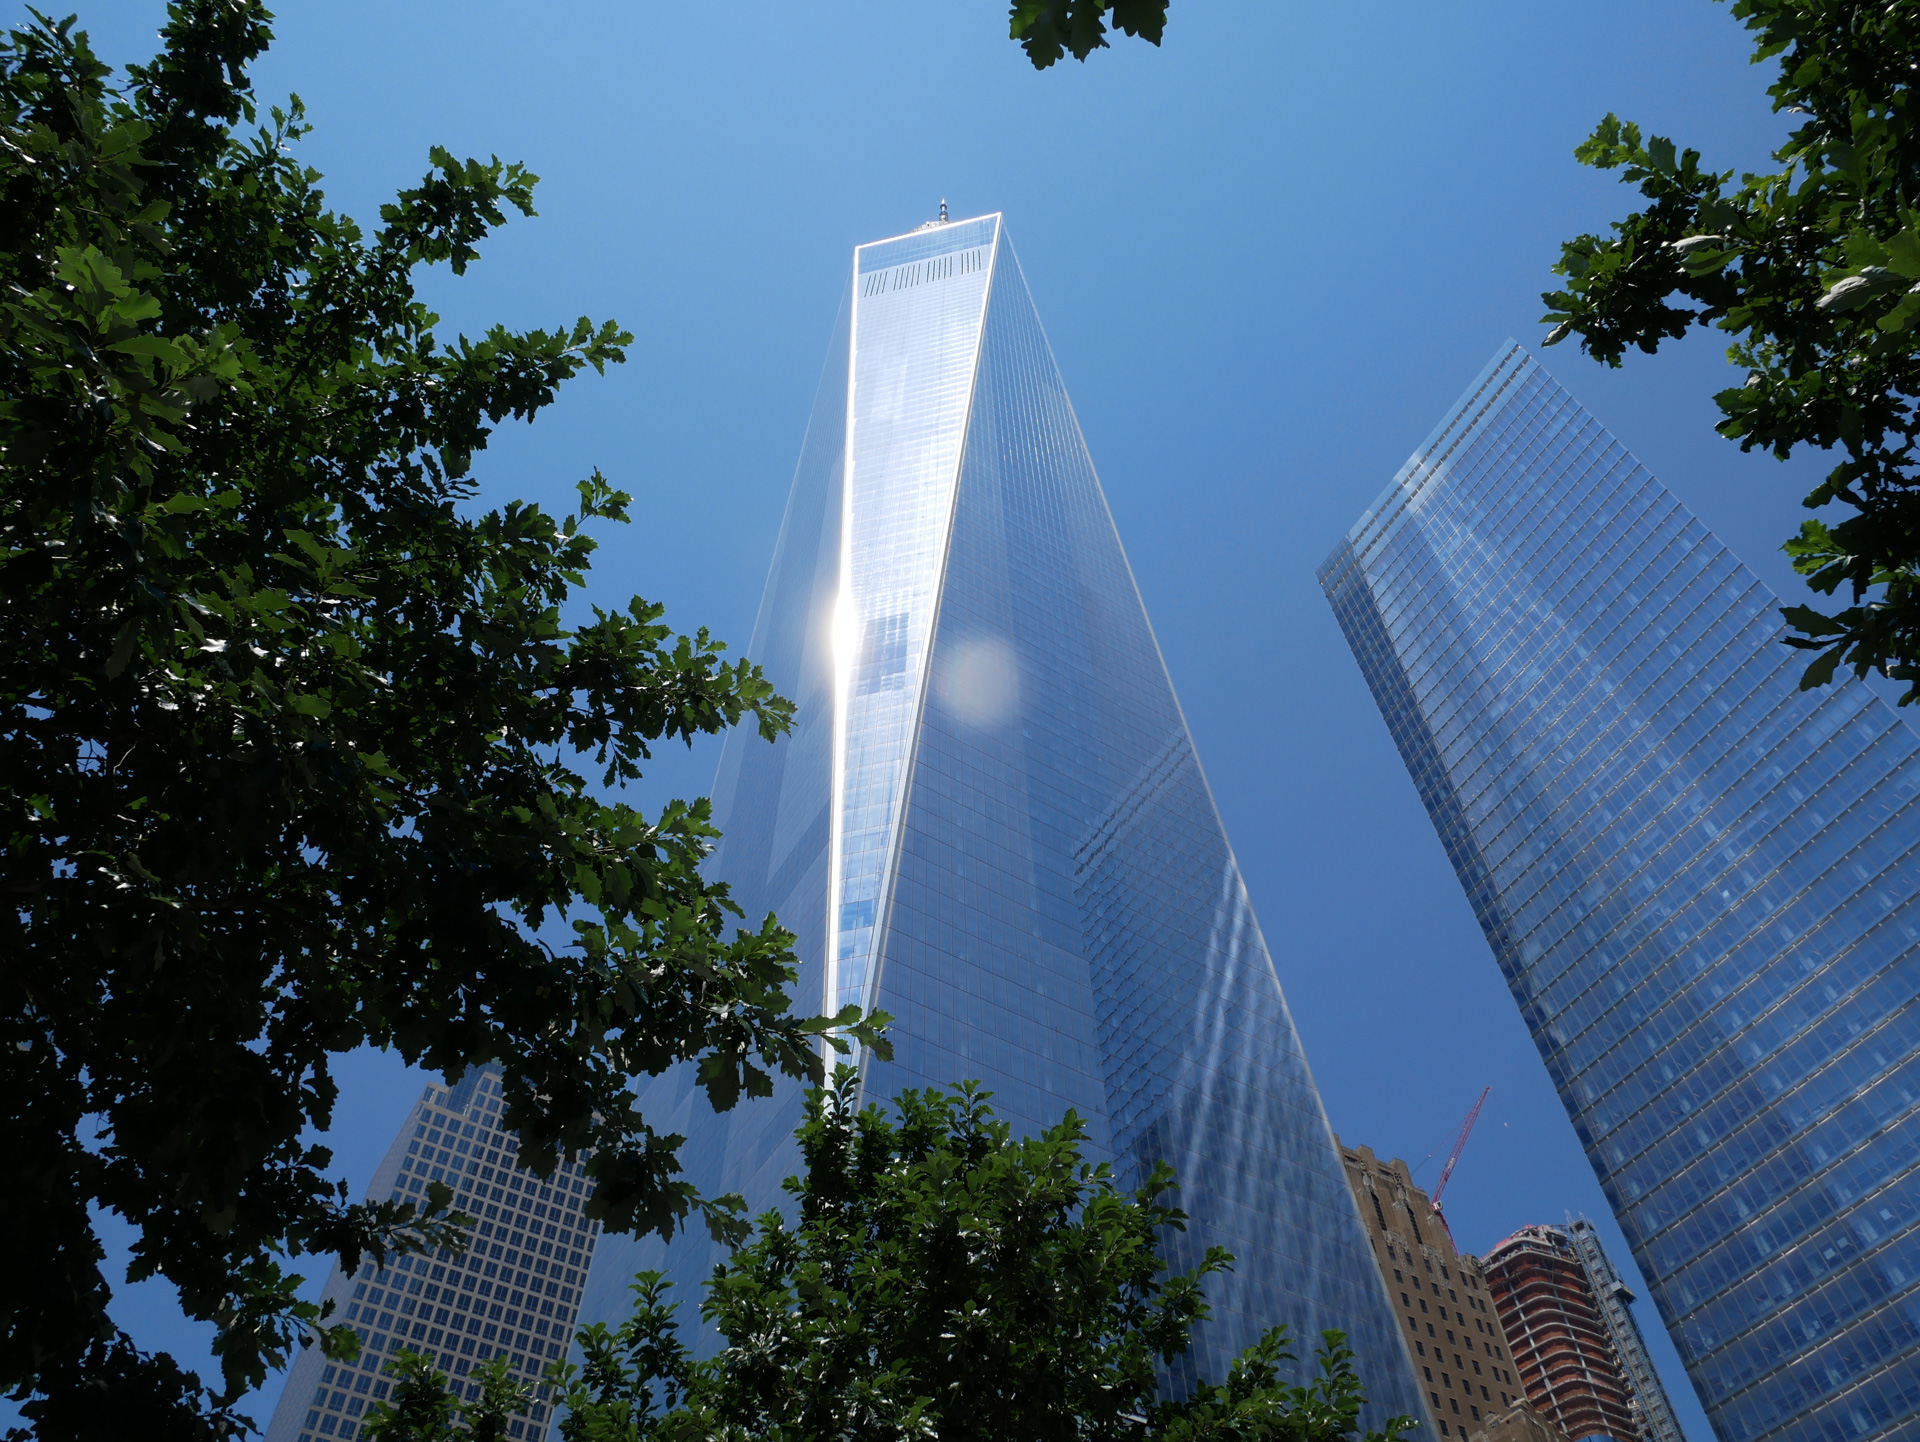 One world trade center de nueva york el art culo m s - Architekt one world trade center ...